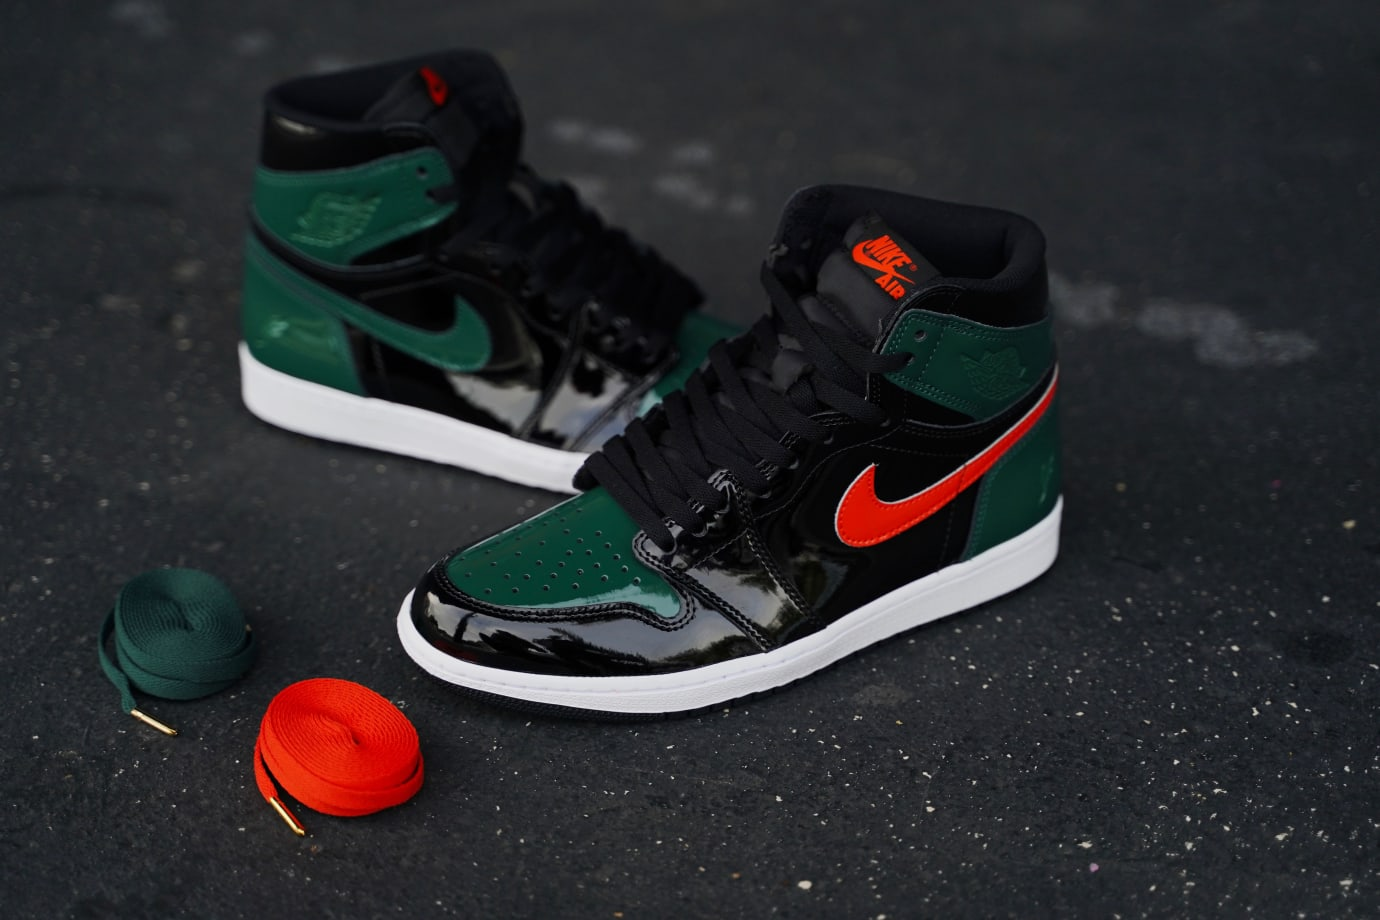 SoleFly Air Jordan 1 High OG Patent